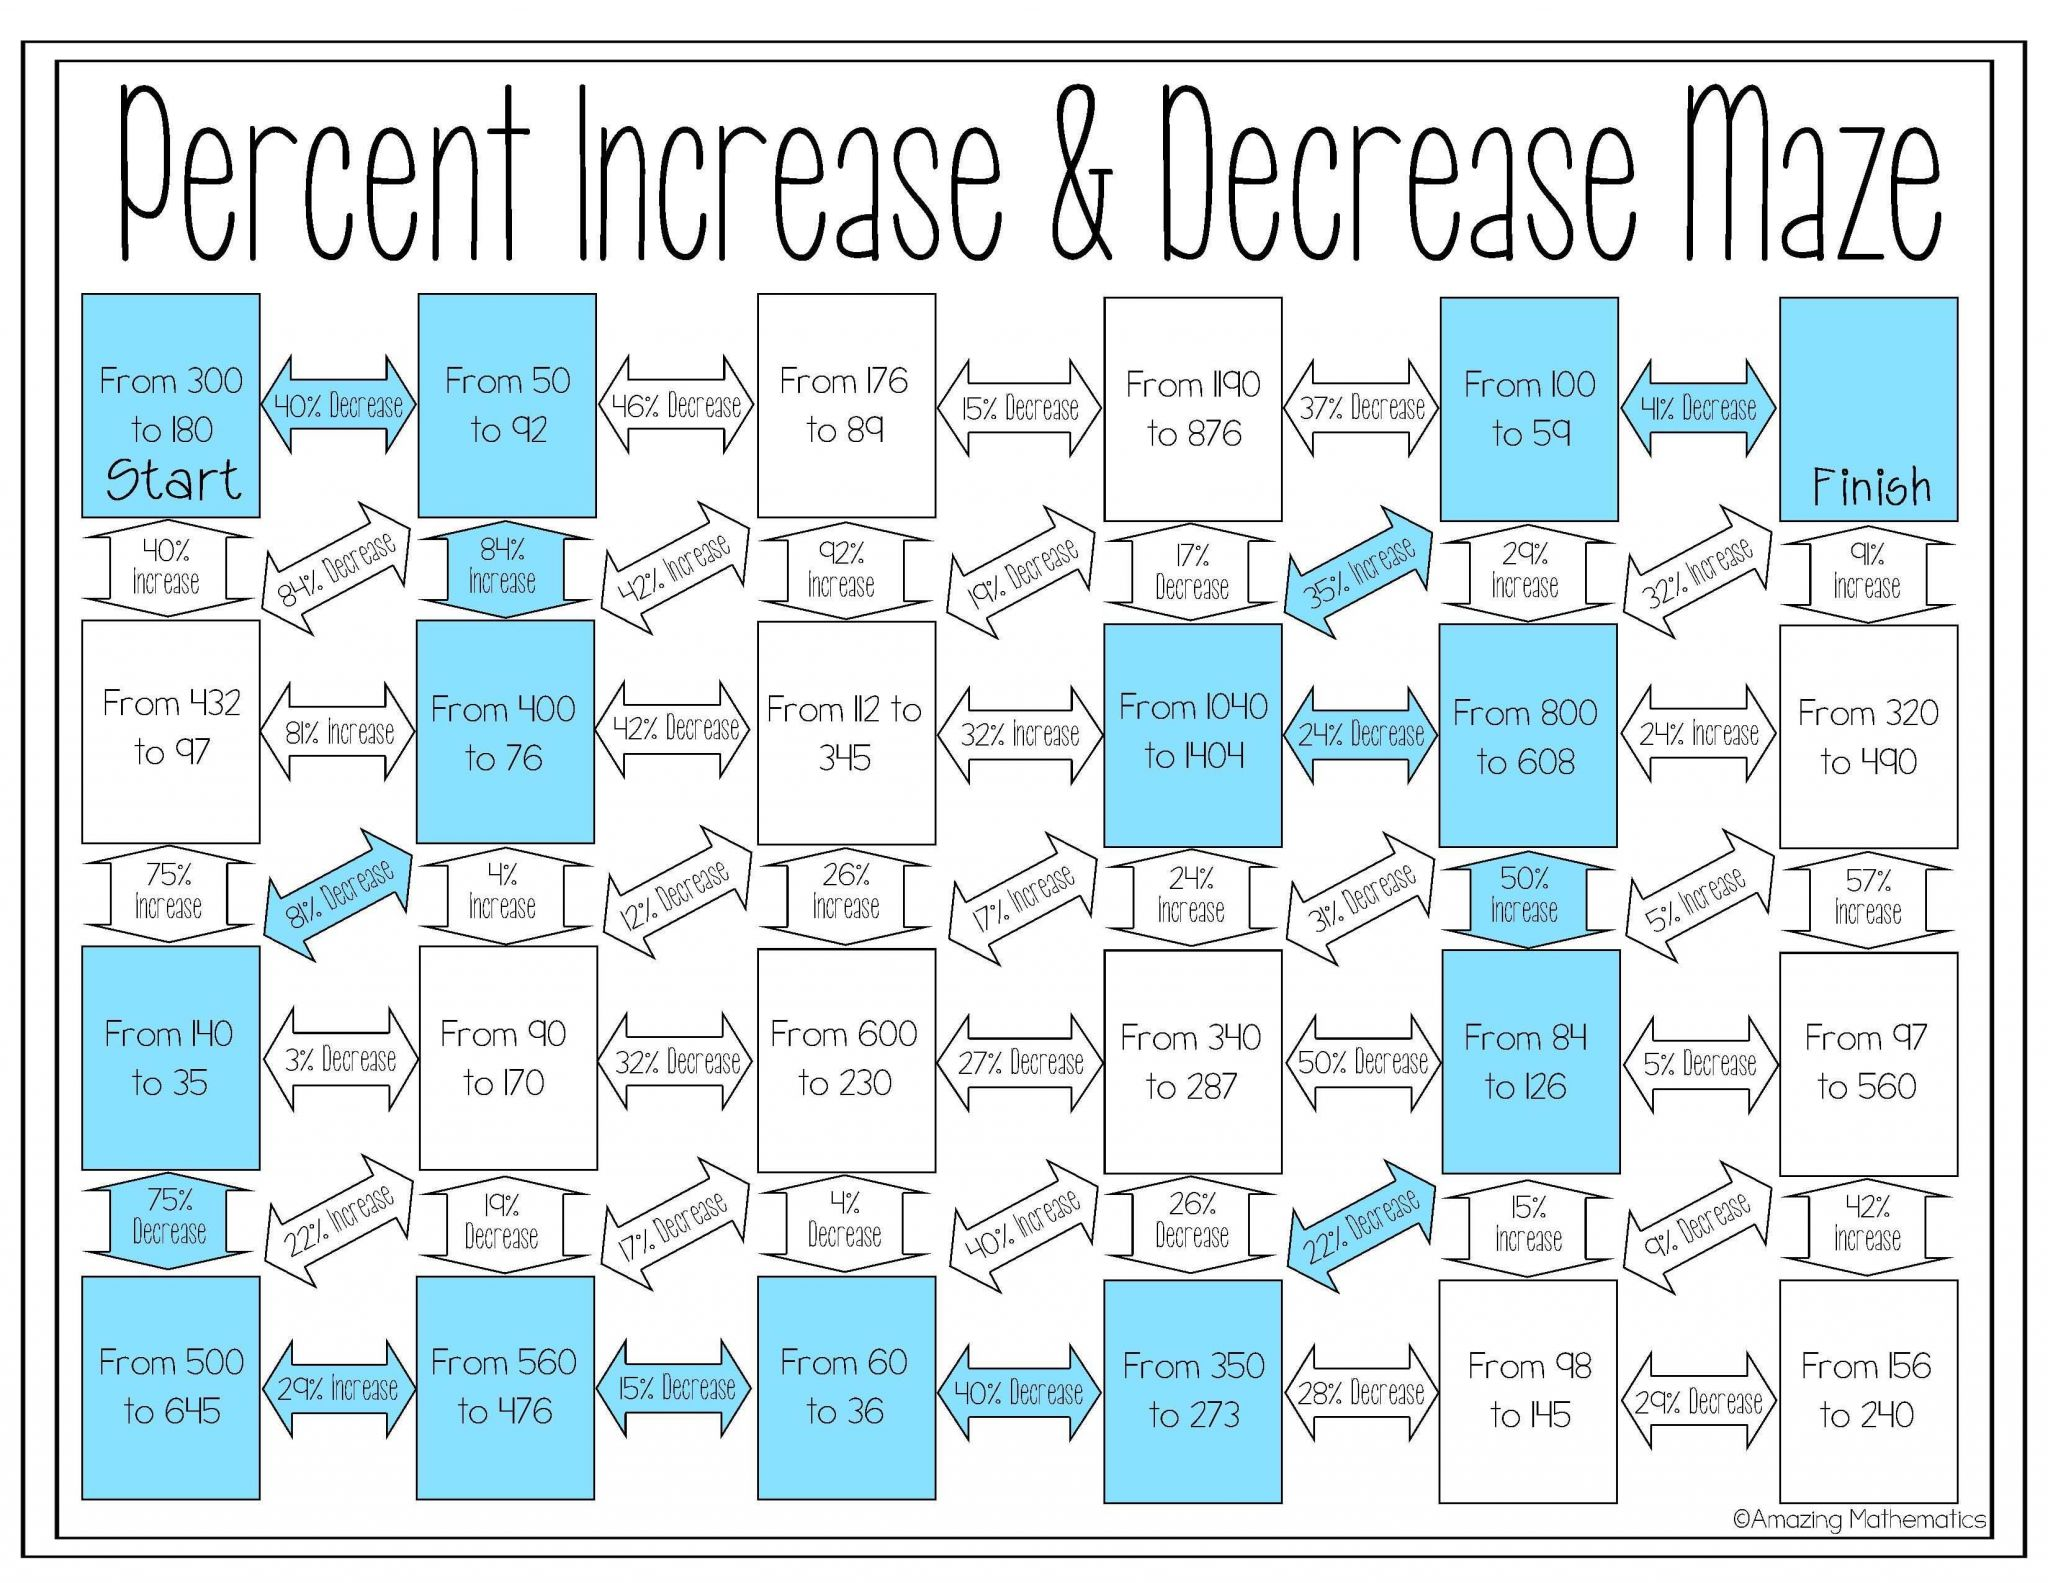 Simple and Compound Interest Practice Worksheet Answer Key Along with Percent Increase and Decrease Maze Pinterest